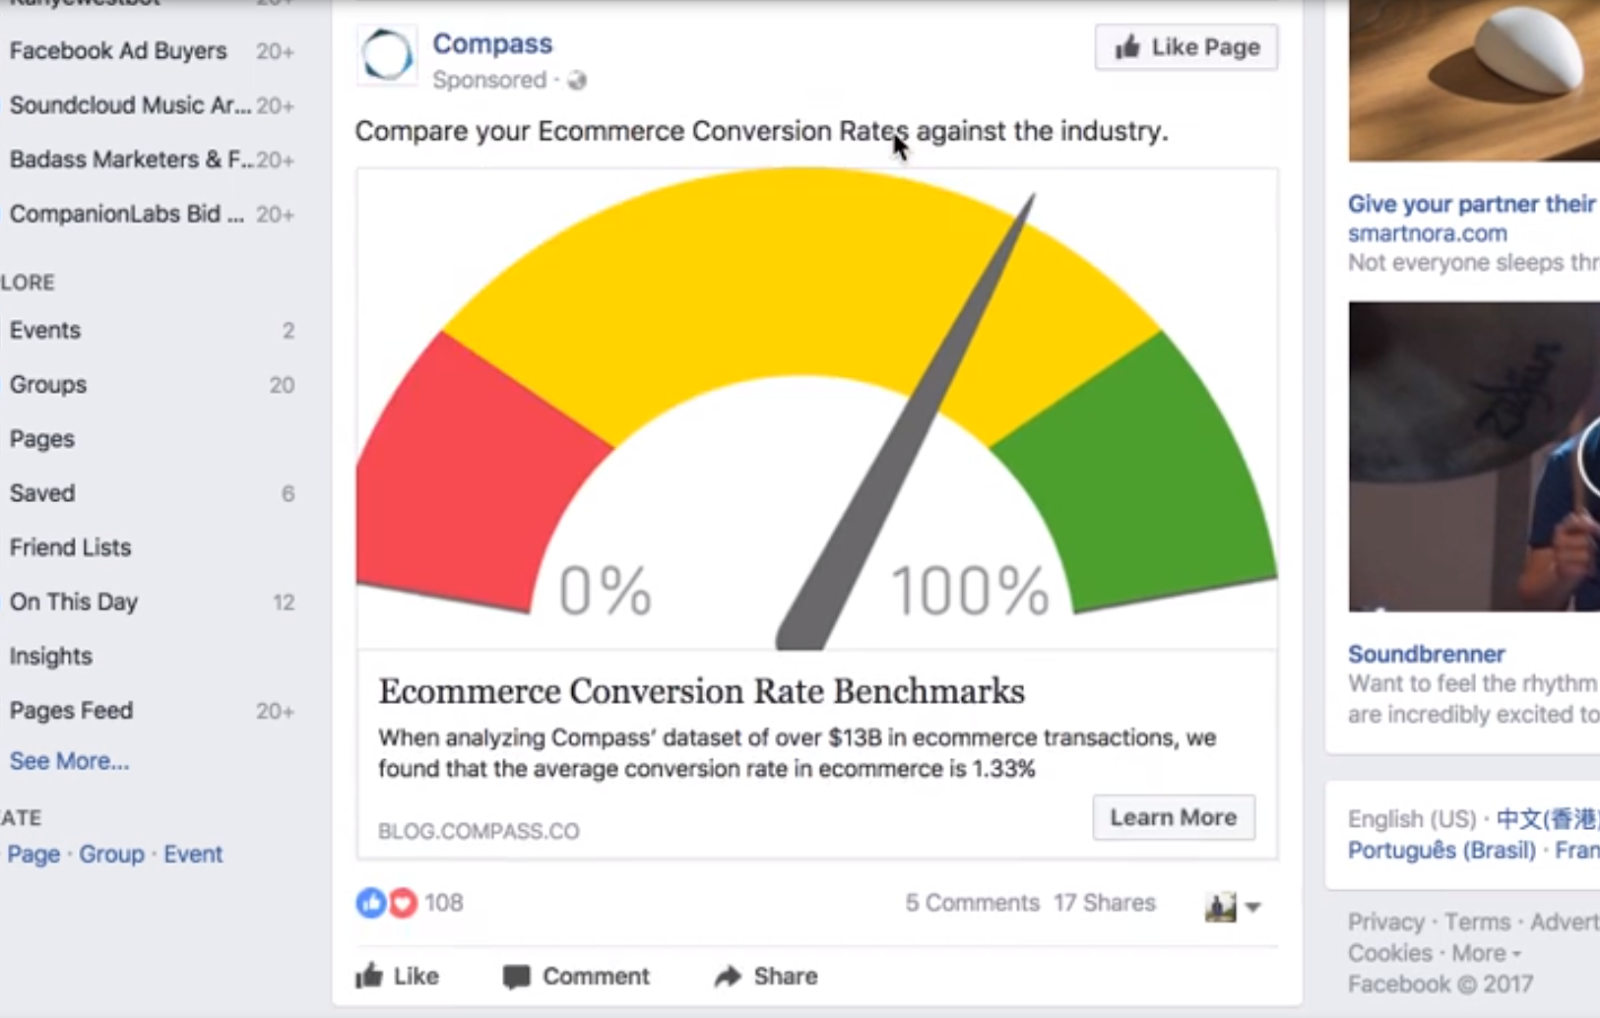 Screenshot showing a facebook ad